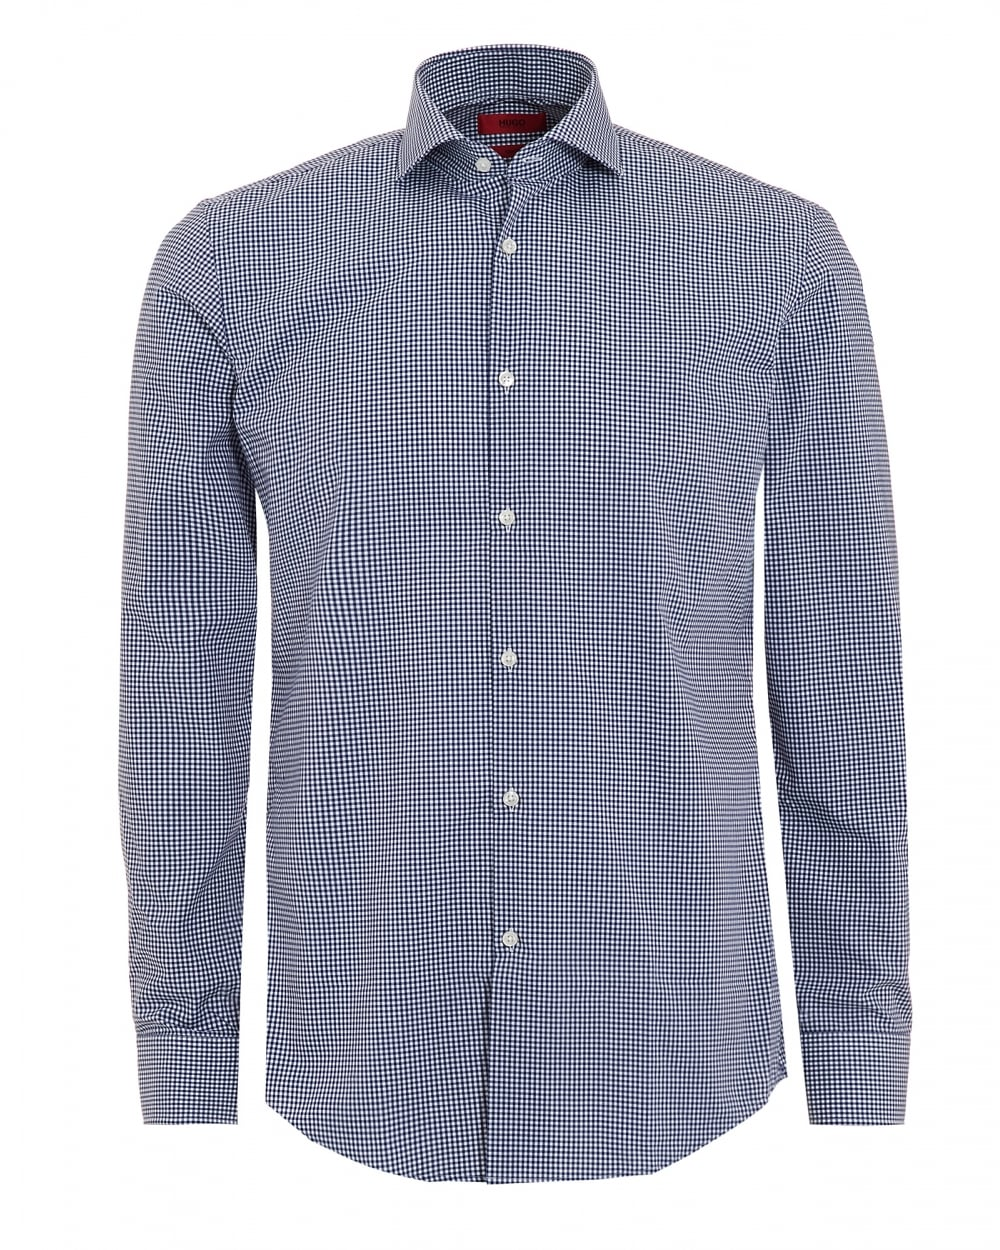 Hugo boss mens c jason shirt long sleeve blue gingham shirt for Mens blue gingham shirt